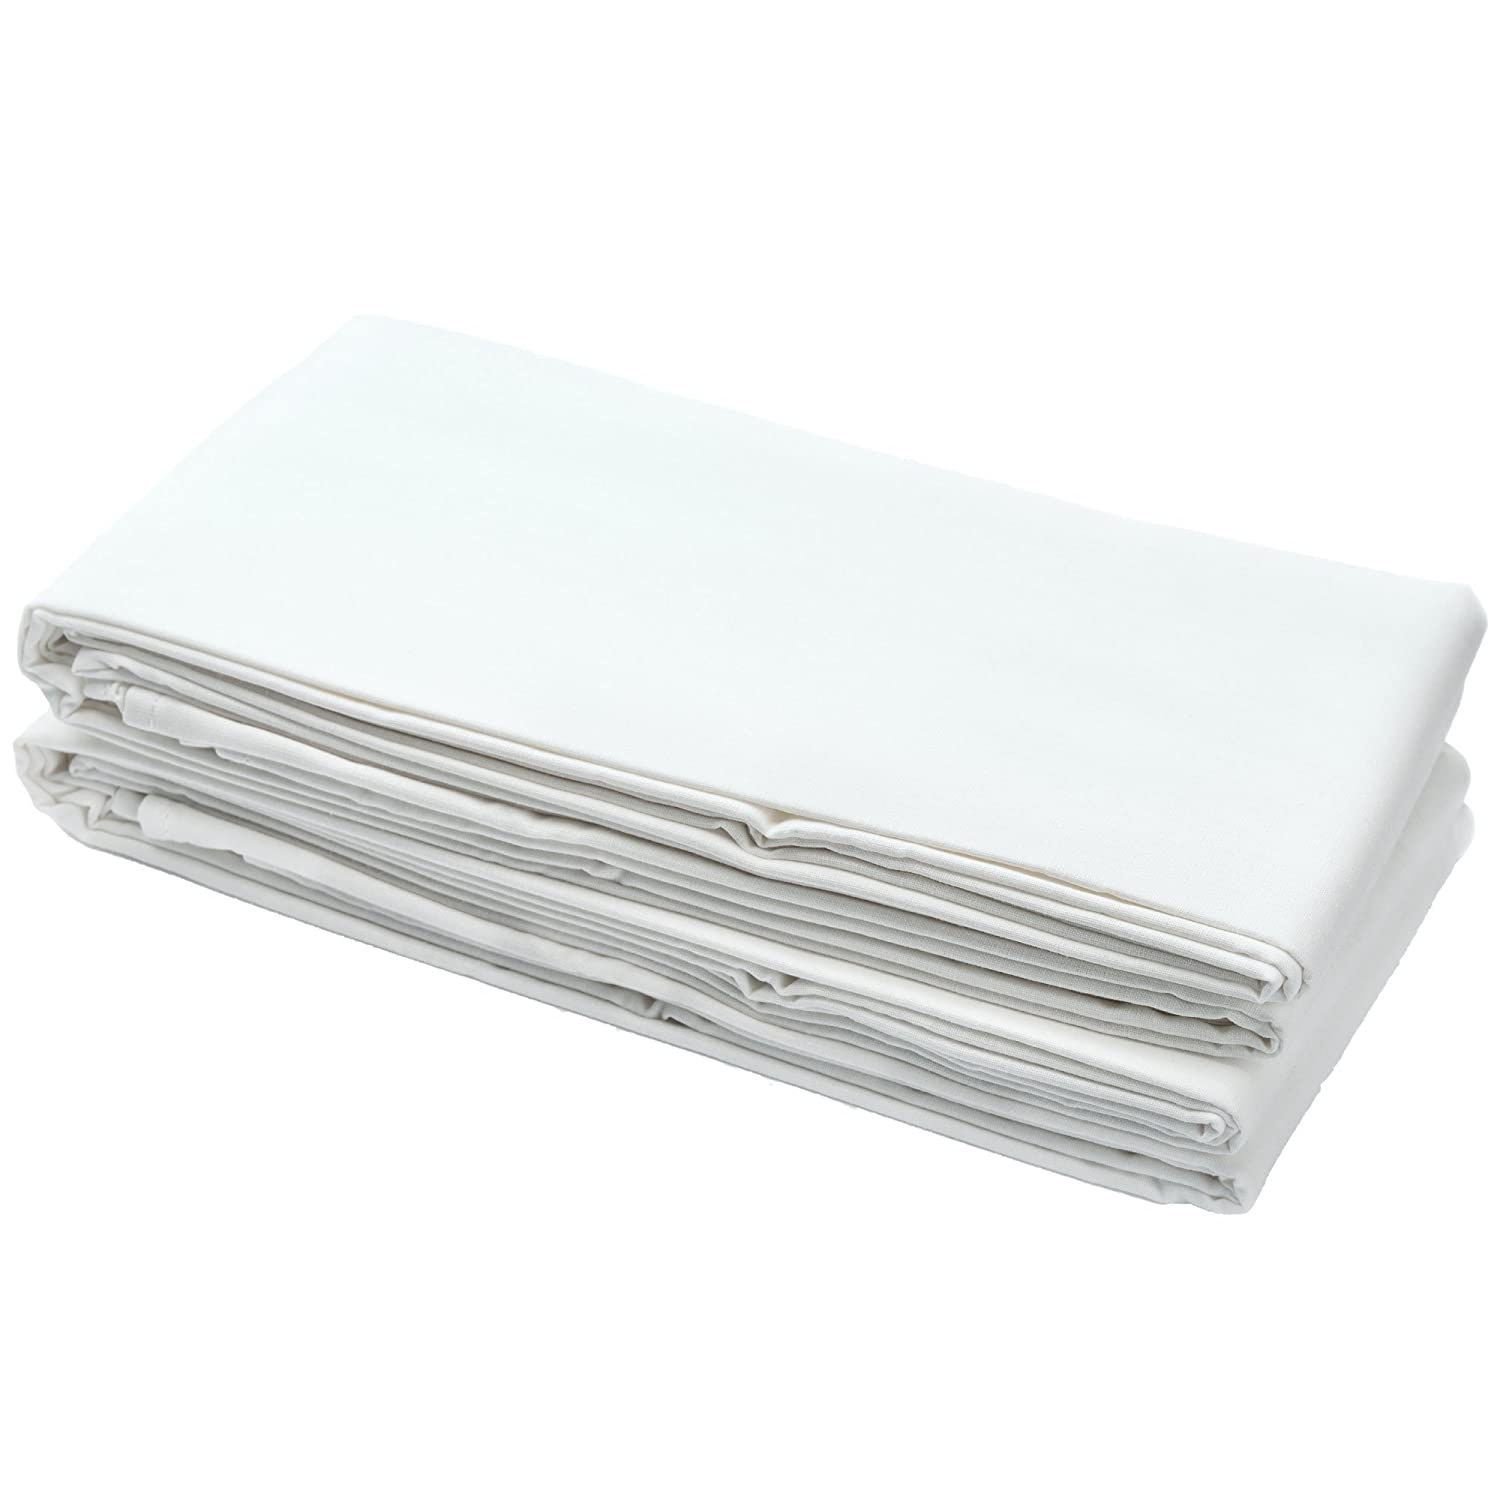 2X Cotton Jersey Fitted Sheet 100% Cotton 120cm x 60cm White For-Your-Little-One